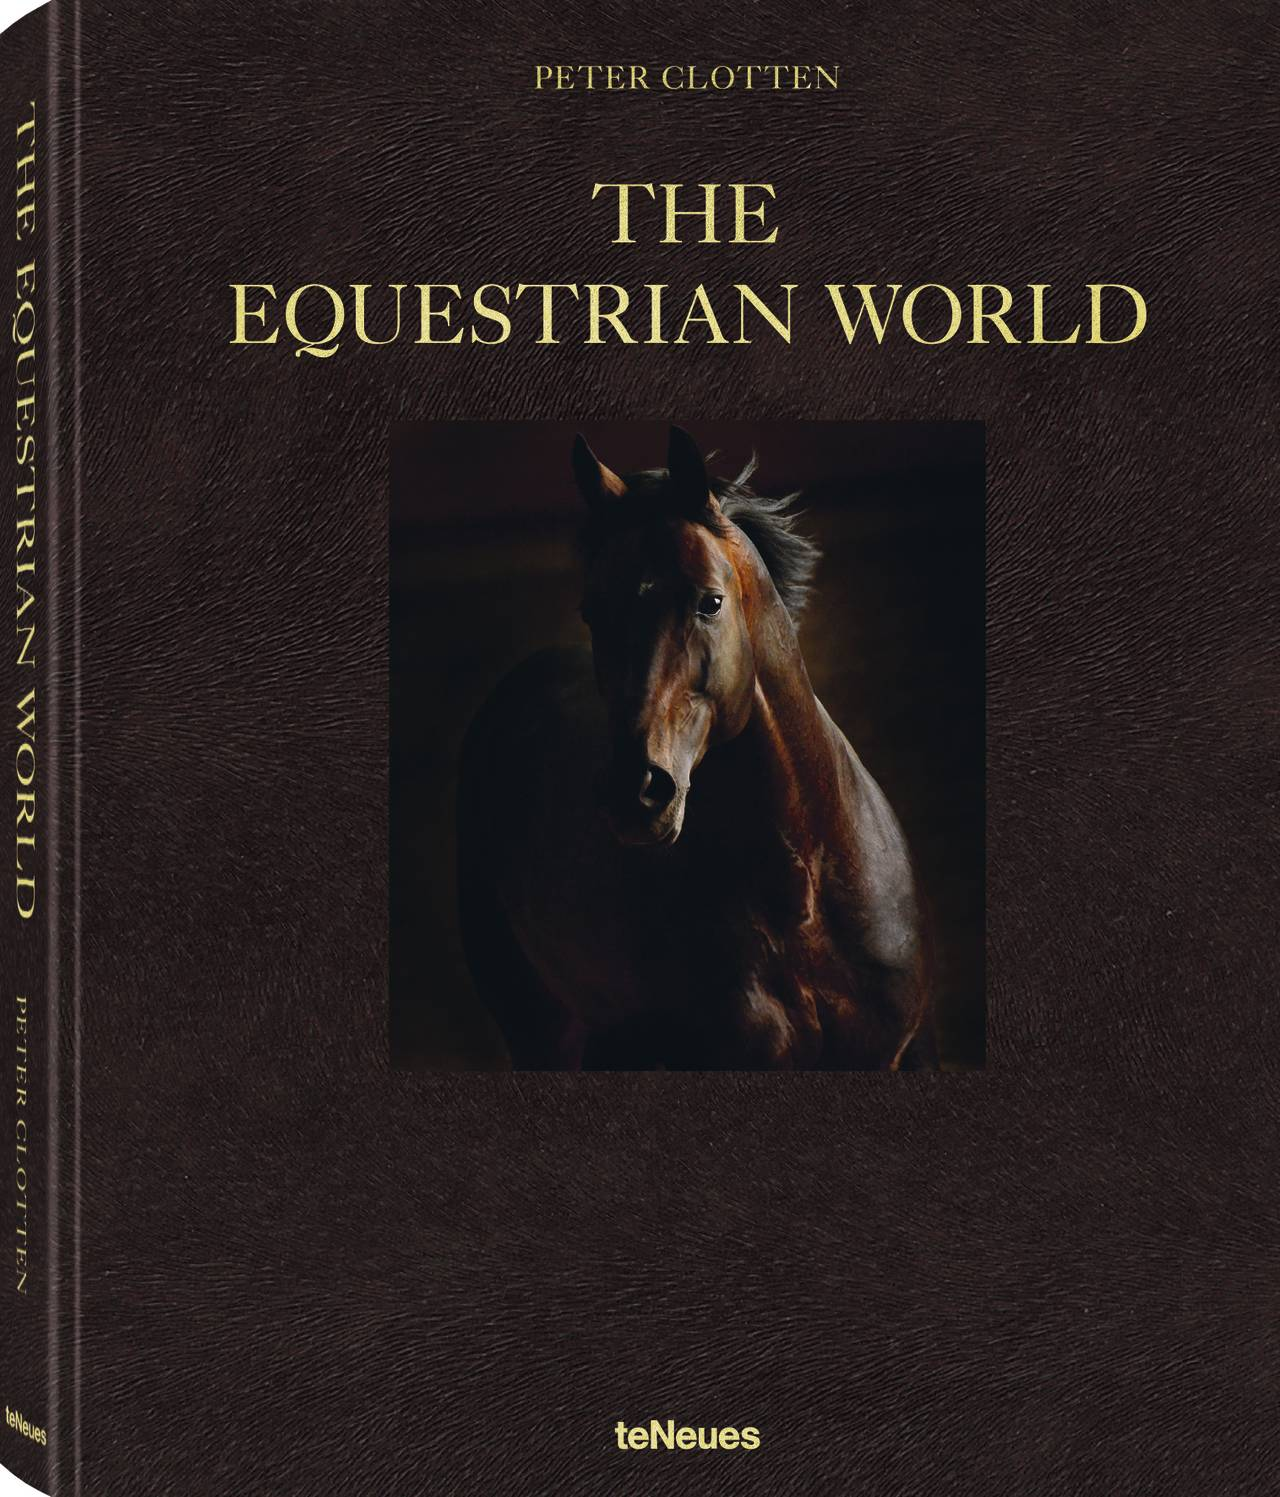 © THE EQUESTRIAN WORLD by Peter Clotten, published by teNeues, www.teneues.com, Photo © Tony Stromberg. All rights reserved.